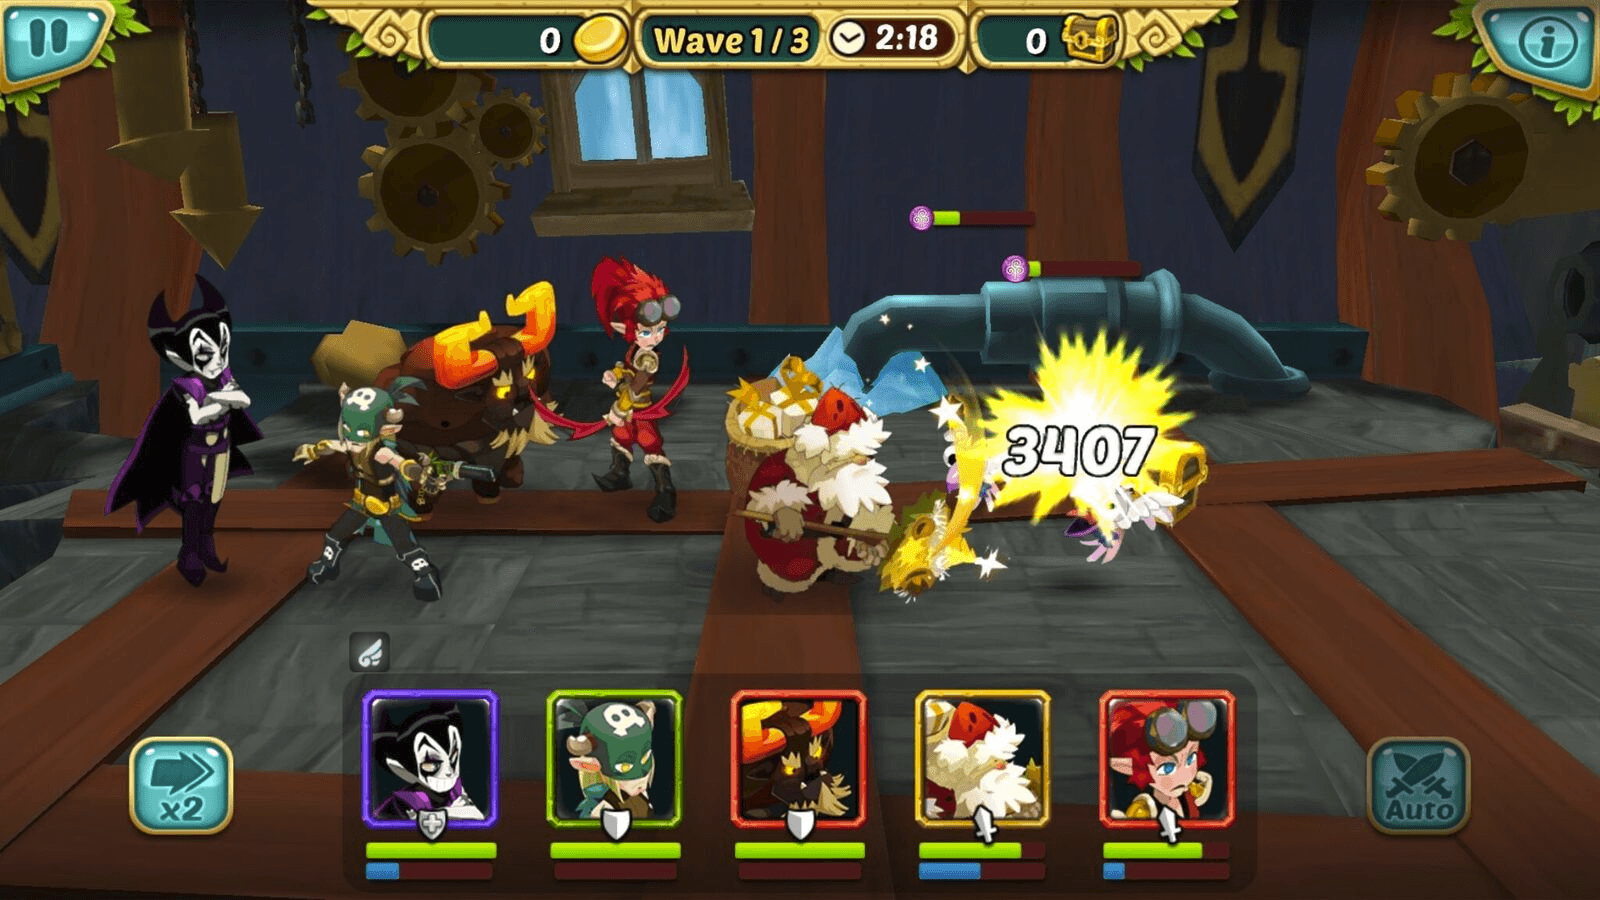 Wakfu Raiders' New Holiday Update Is Live news thumbnail